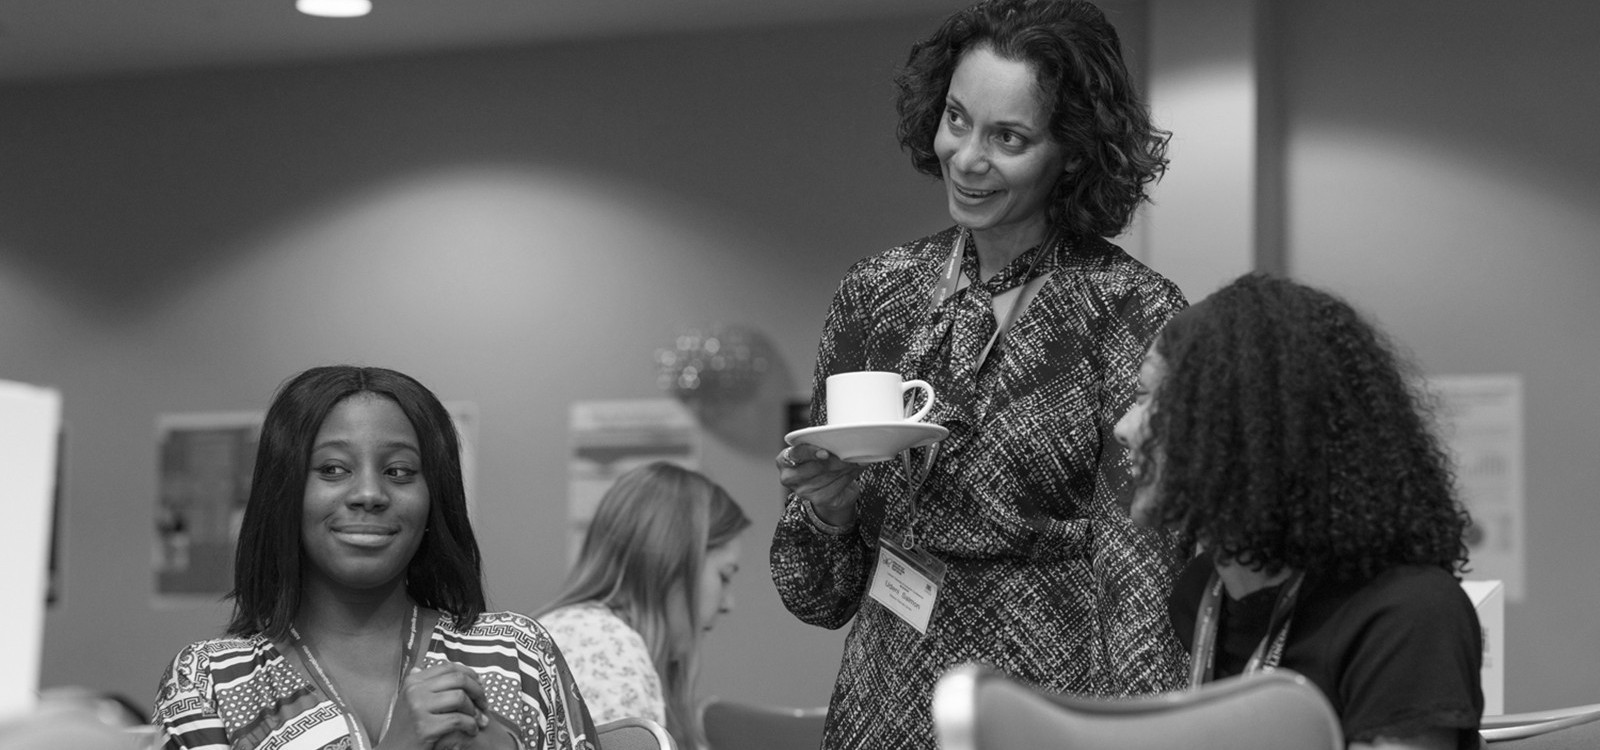 A racially diverse group of researchers chatting over coffee, depicting collaborative working